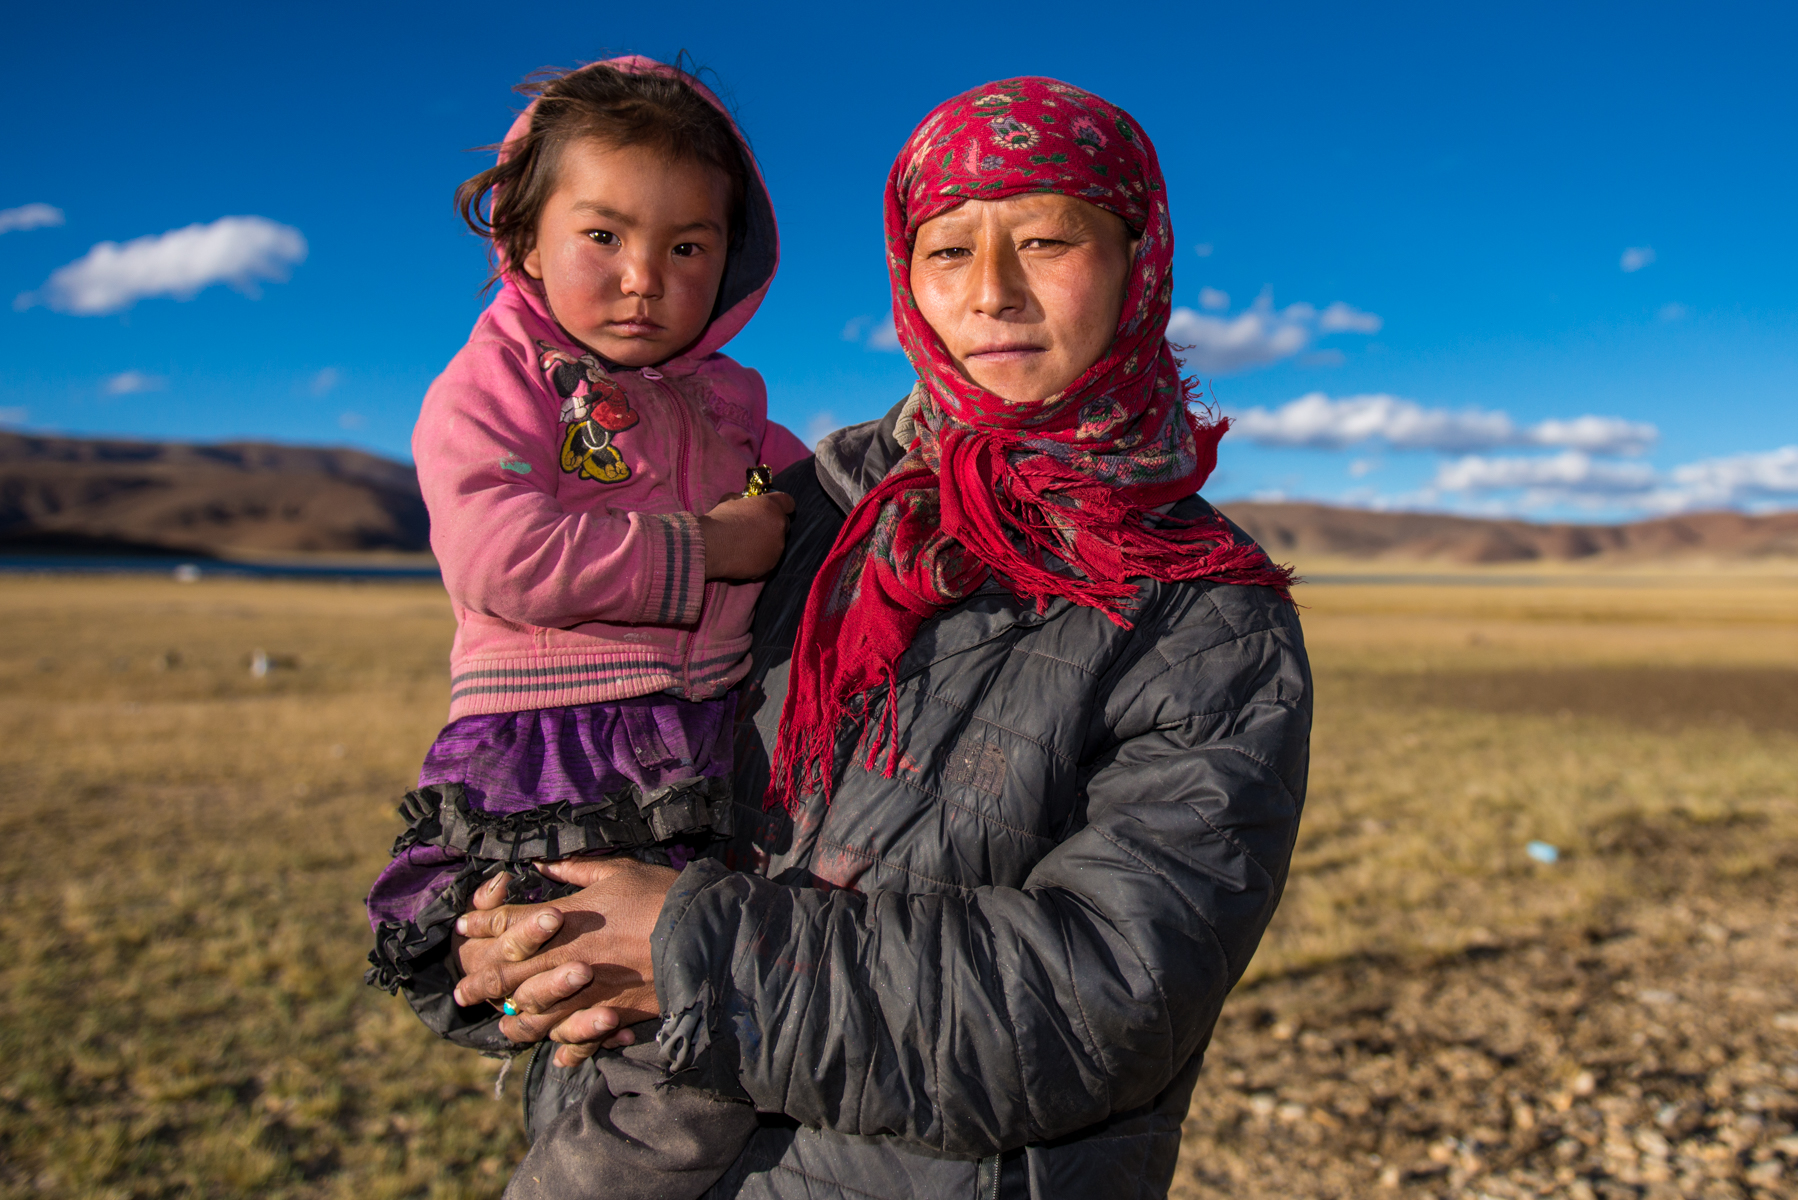 The next generation, Changthang